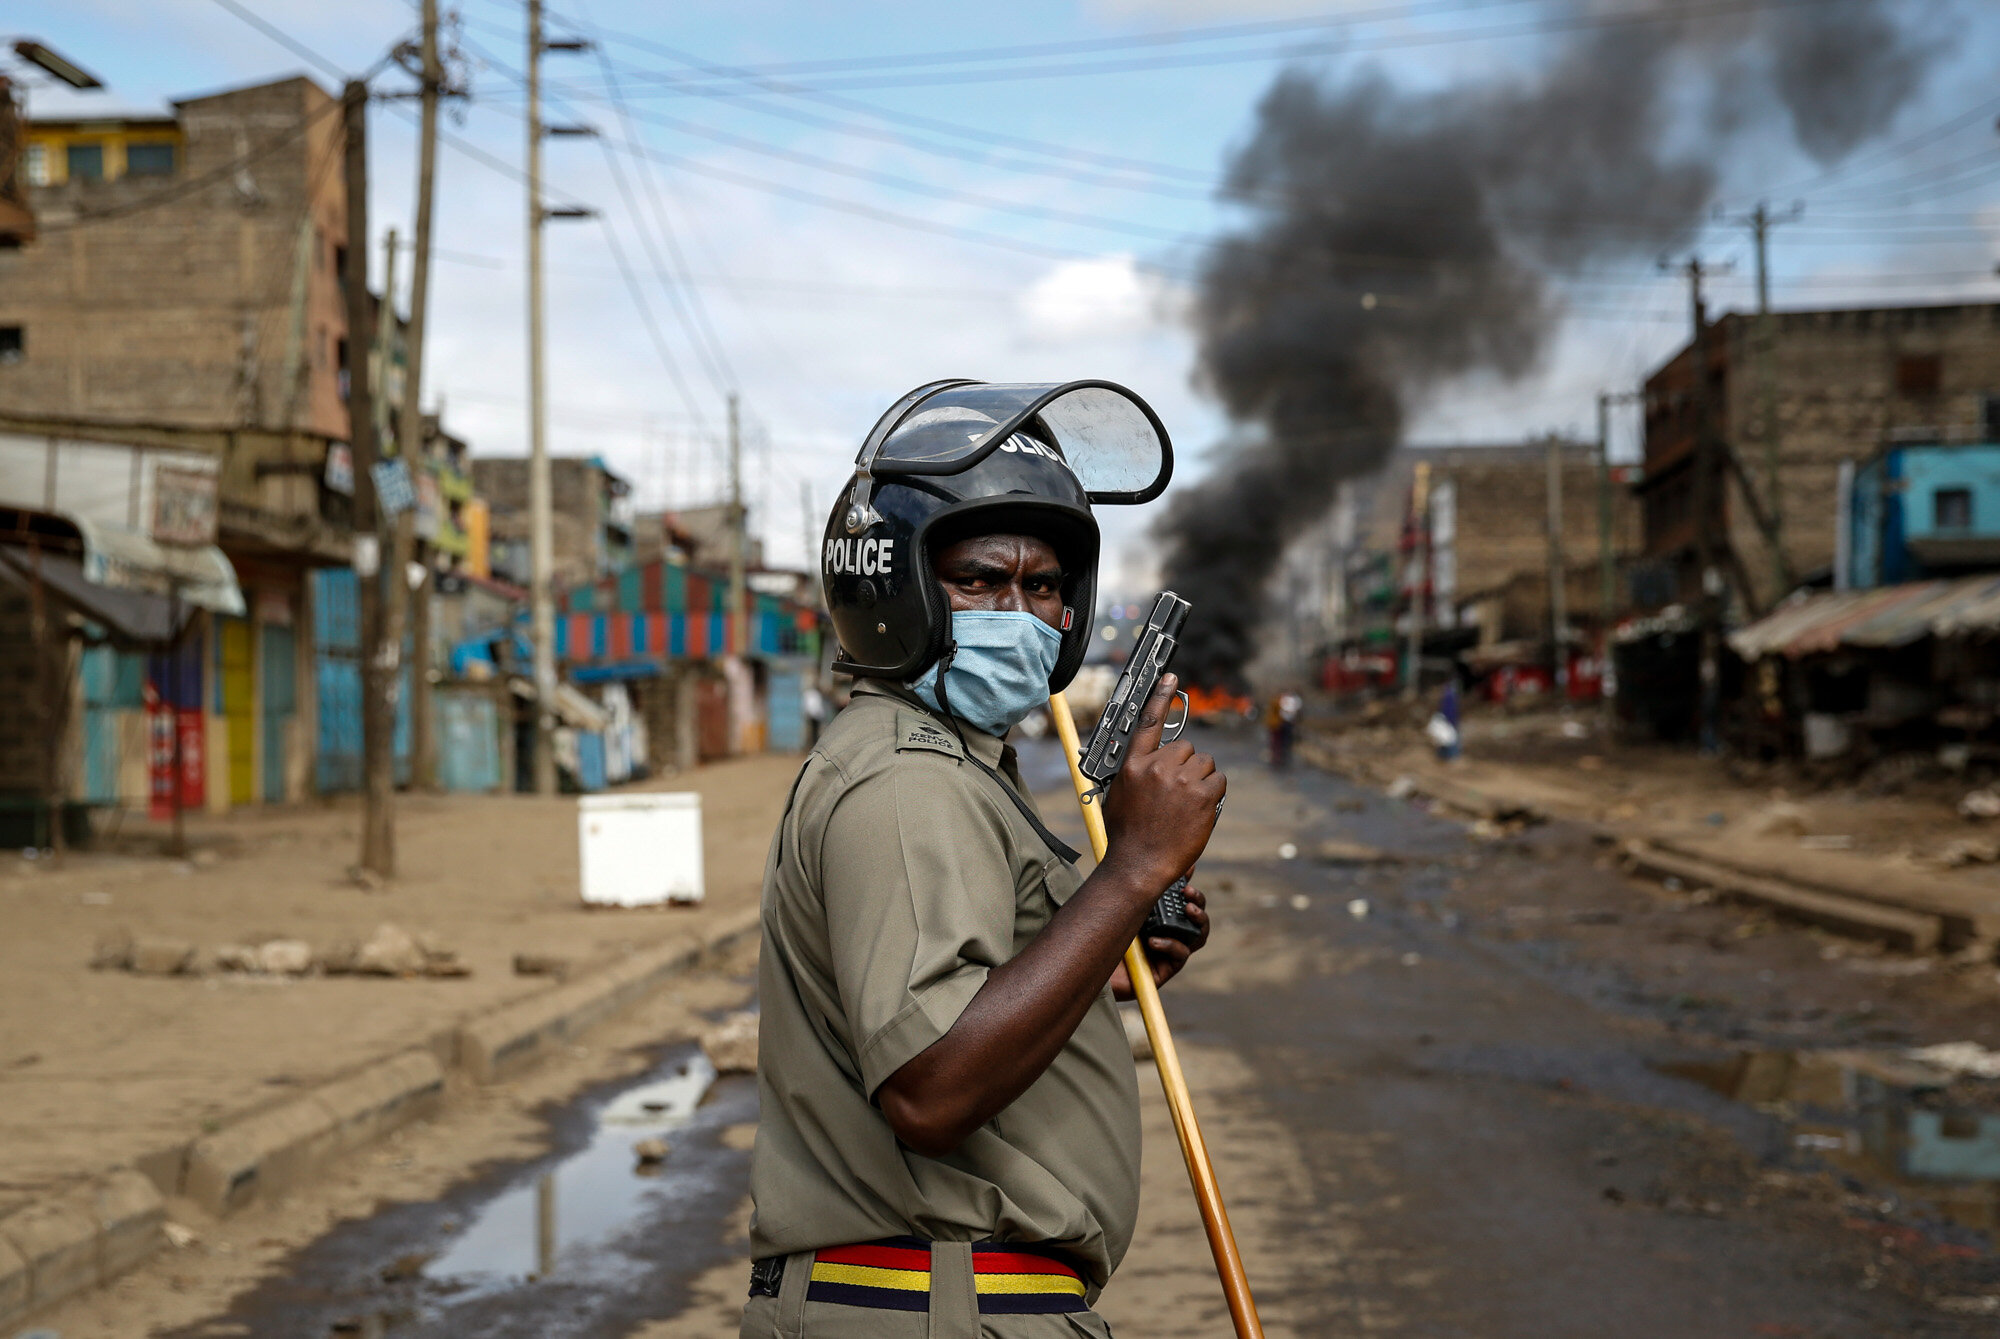 A police officer holds a pistol during clashes with protesters near a barricade of burning tires in the Kariobangi slum of Nairobi, Kenya, on May 8, 2020. Hundreds of protesters blocked one of the capital's major highways to protest government demolitions of the homes of more than 7,000 people, causing many to sleep out in the rain and cold because of restrictions on movement due to the coronavirus. (AP Photo/Brian Inganga)